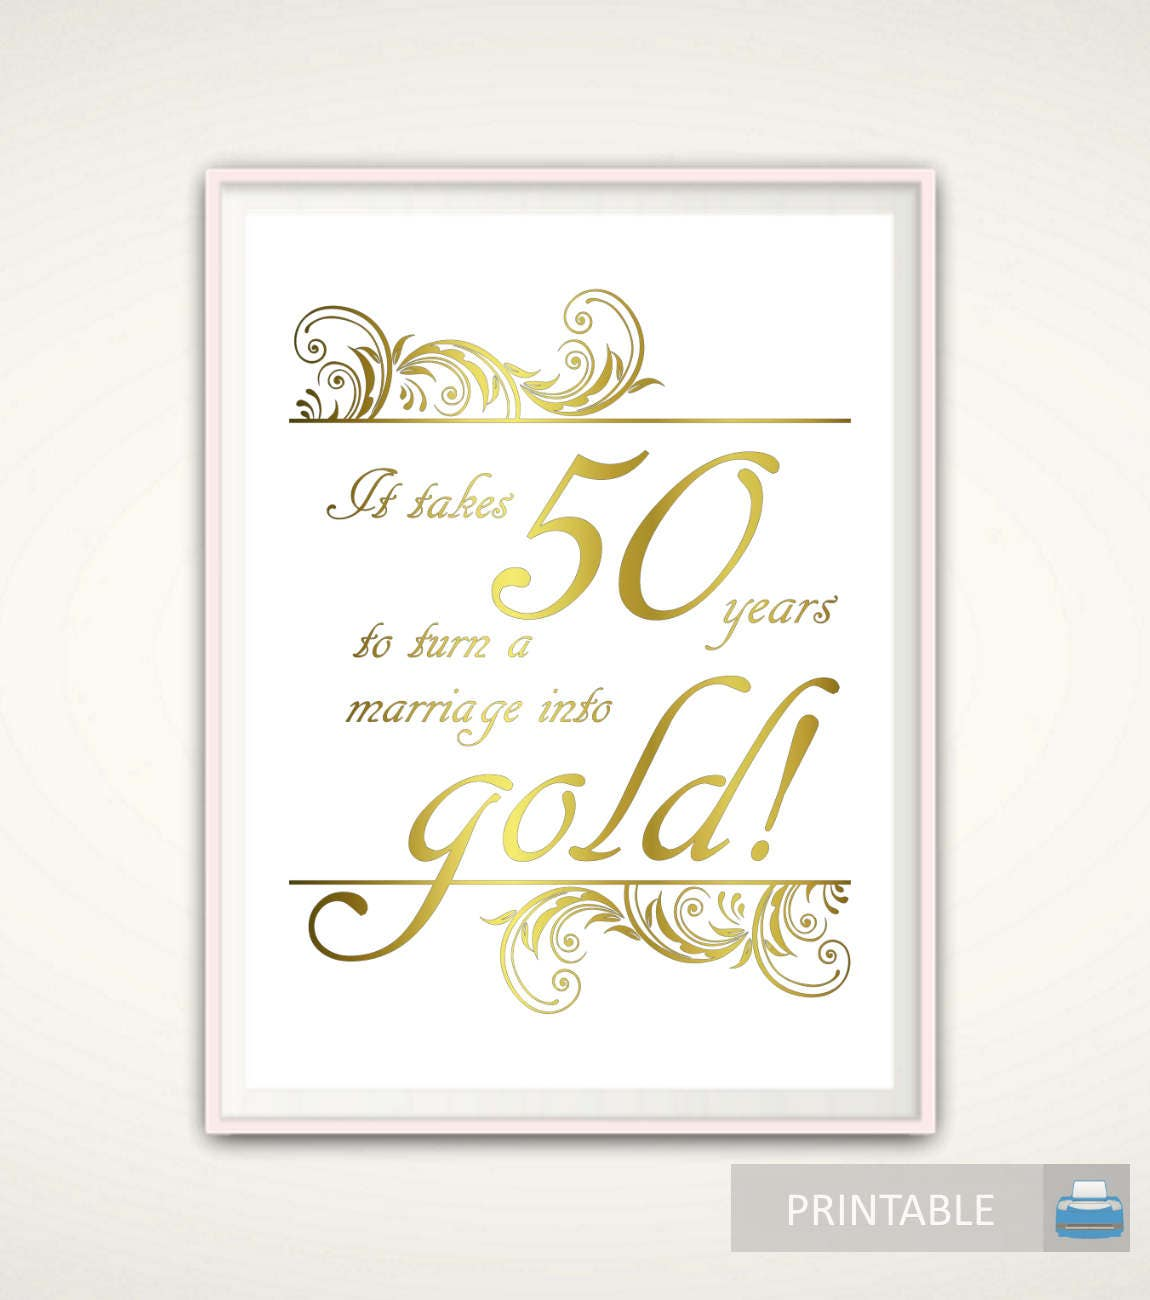 Gift For Wedding Anniversary Of Parents: 50th Anniversary Gifts For Parents 50th Anniversary Print